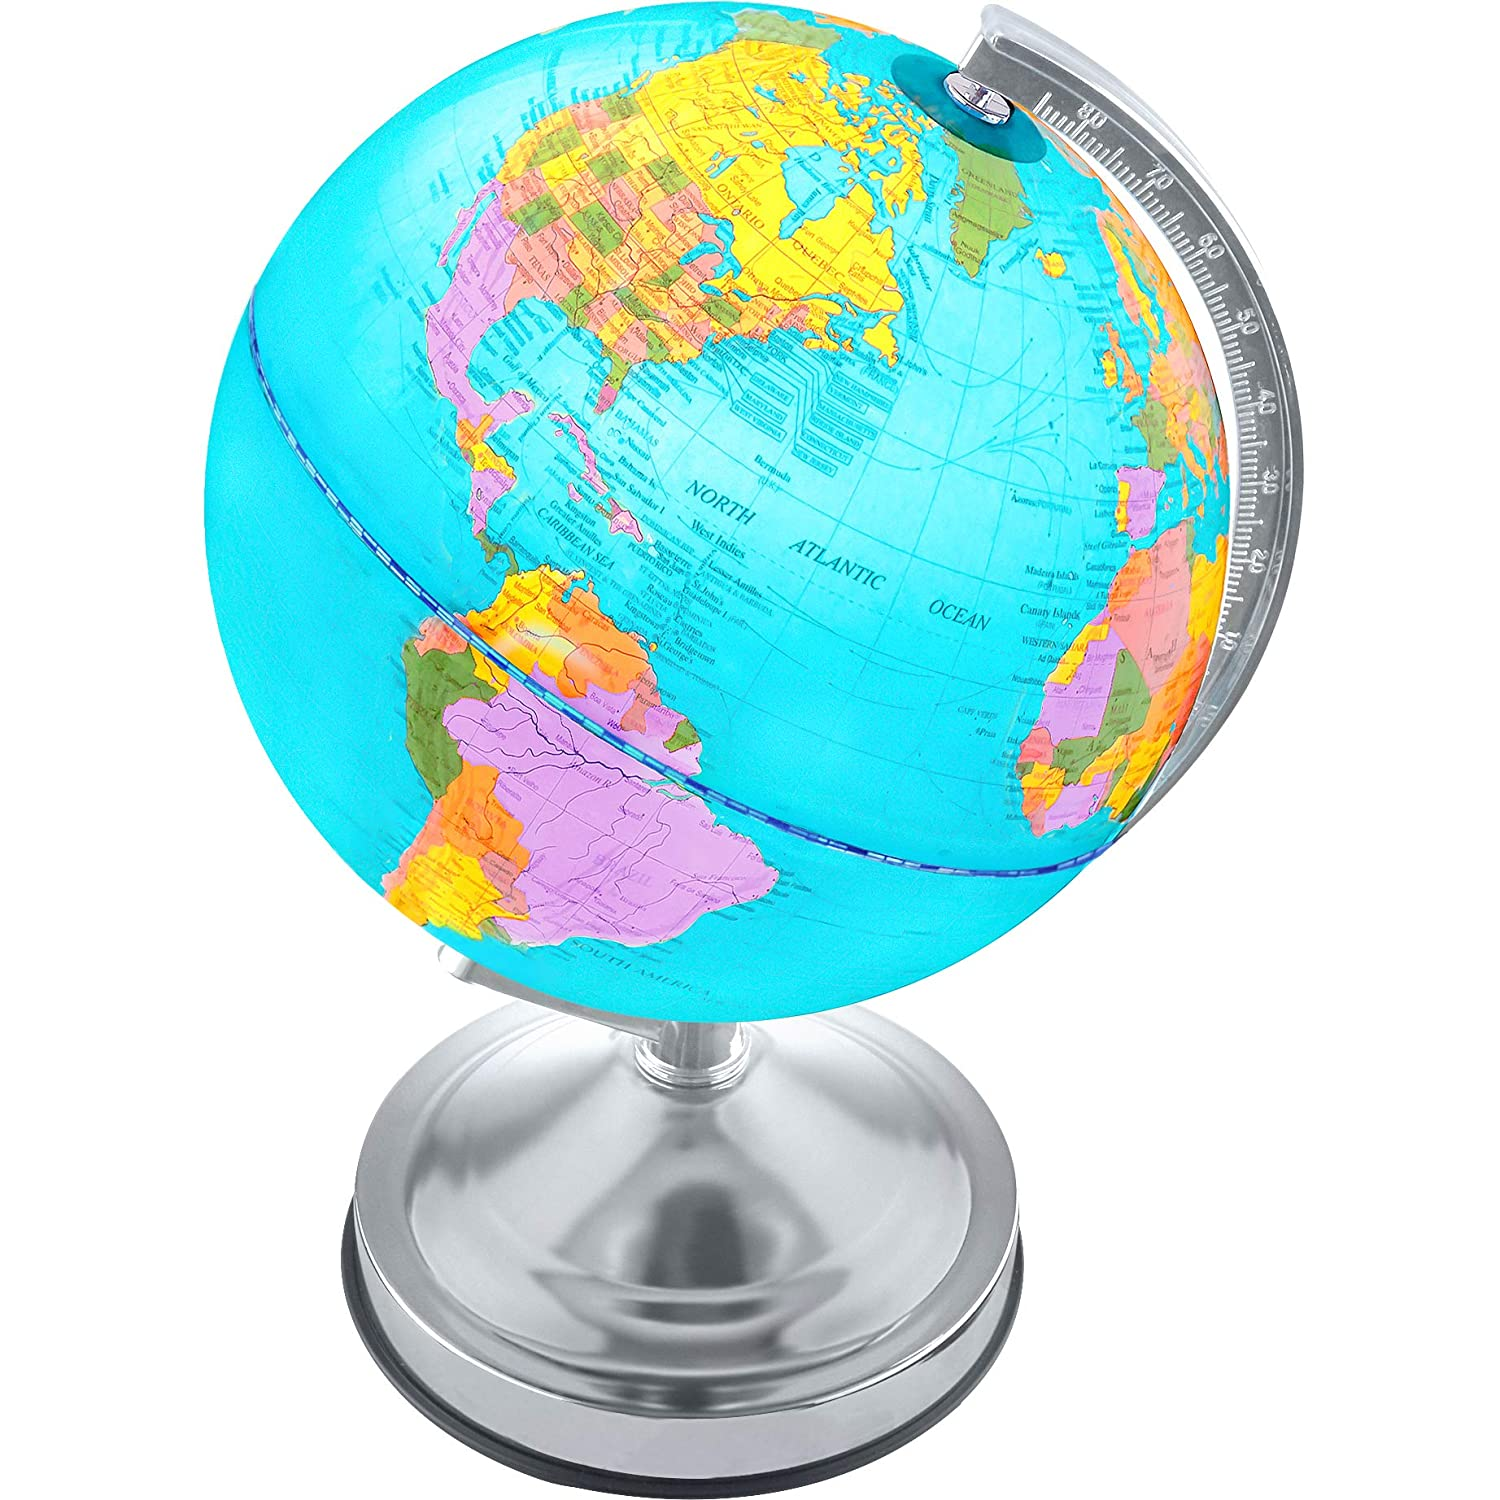 Illuminated Kids Globe with Stand – Educational Gift with Detailed World Map and LED Night Light